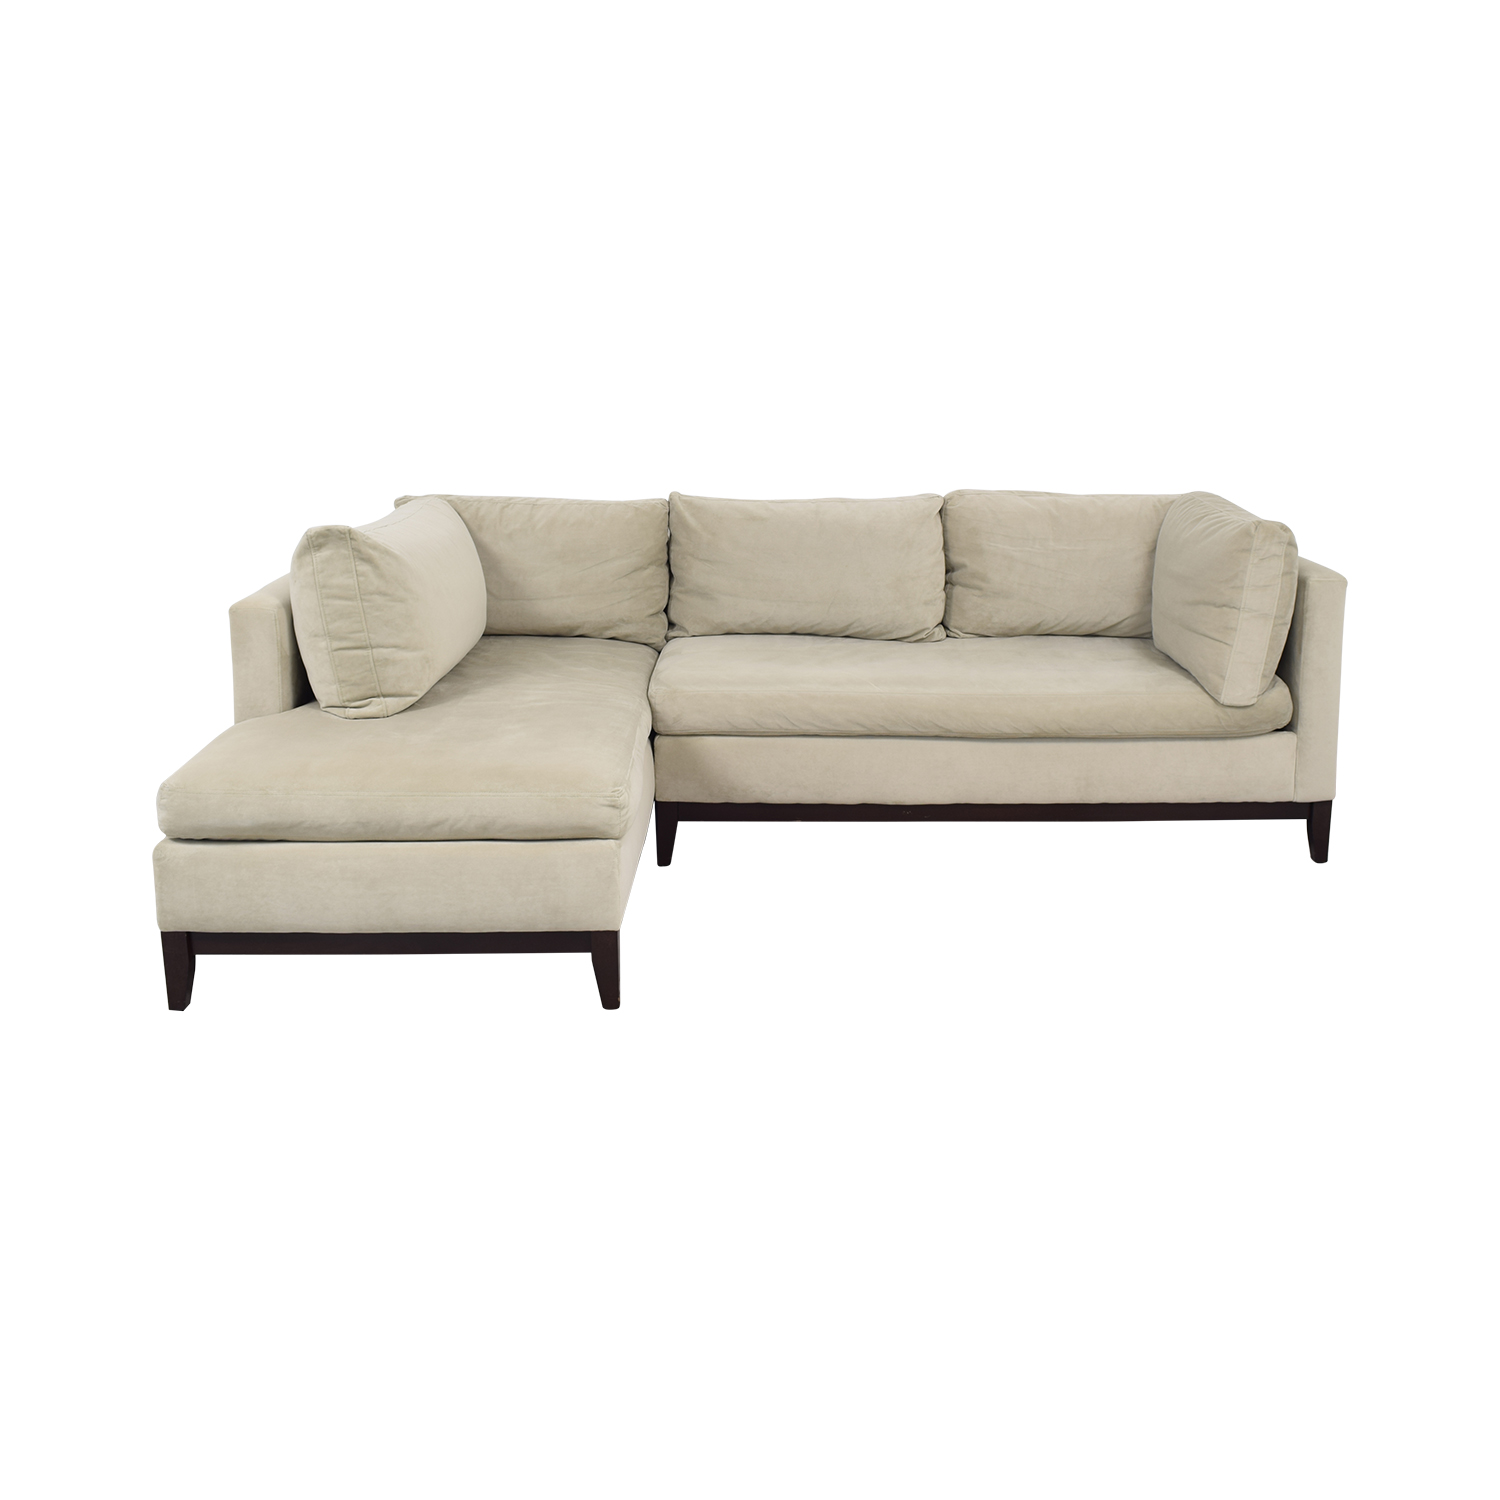 West Elm West Elm Sectional Sofa with Chaise Sectionals